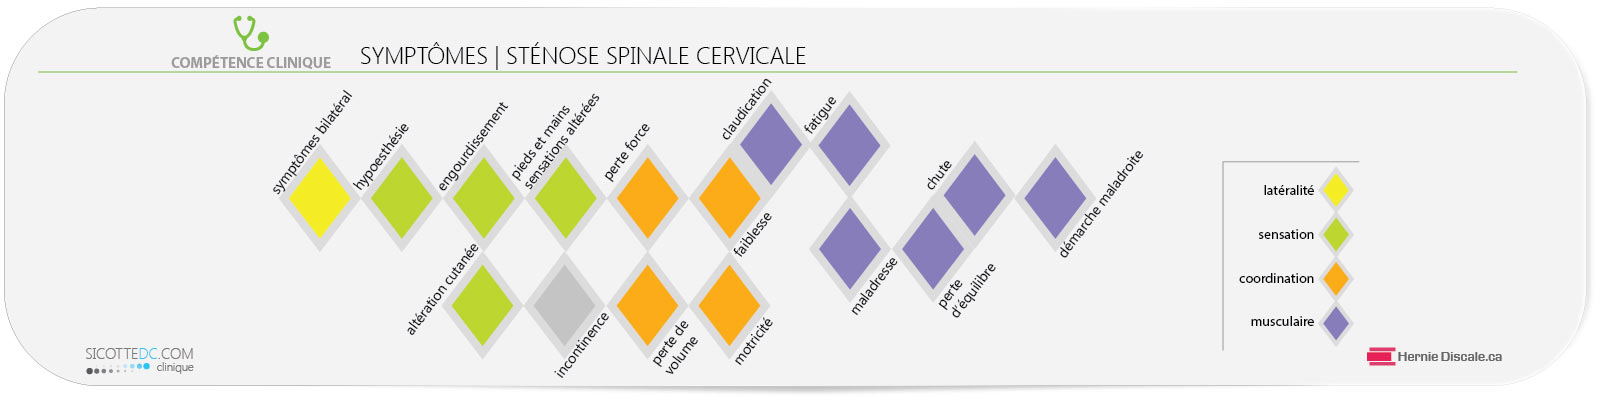 La classification de la sténose spinale cervicale Y Kang.